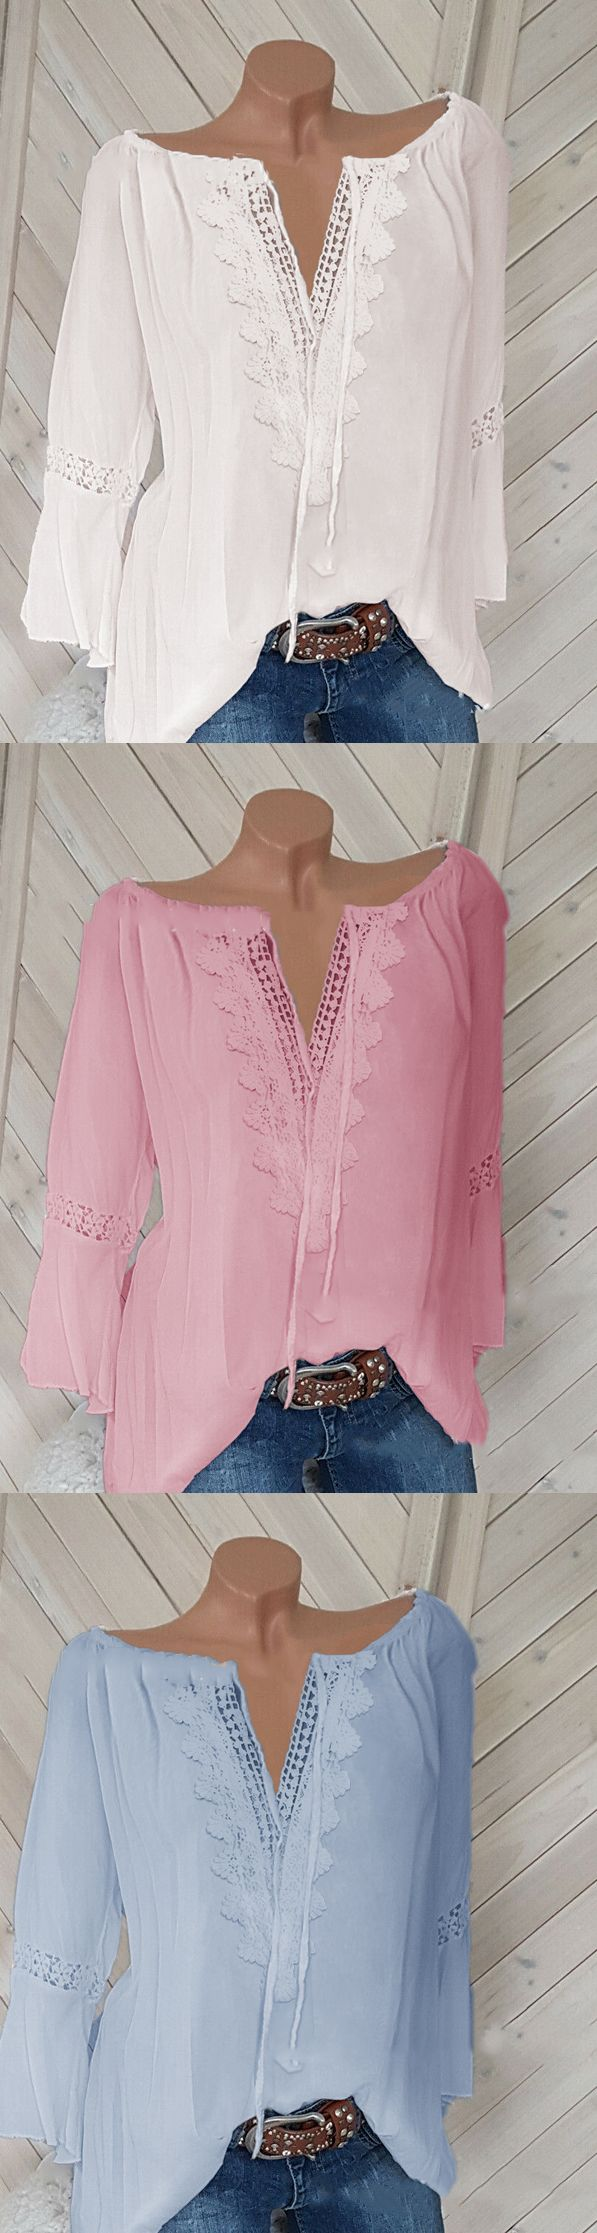 SHOP NOW>>$23.99 SALE!Casual Long Sleeve V Neck Plus Size Shirts Tops